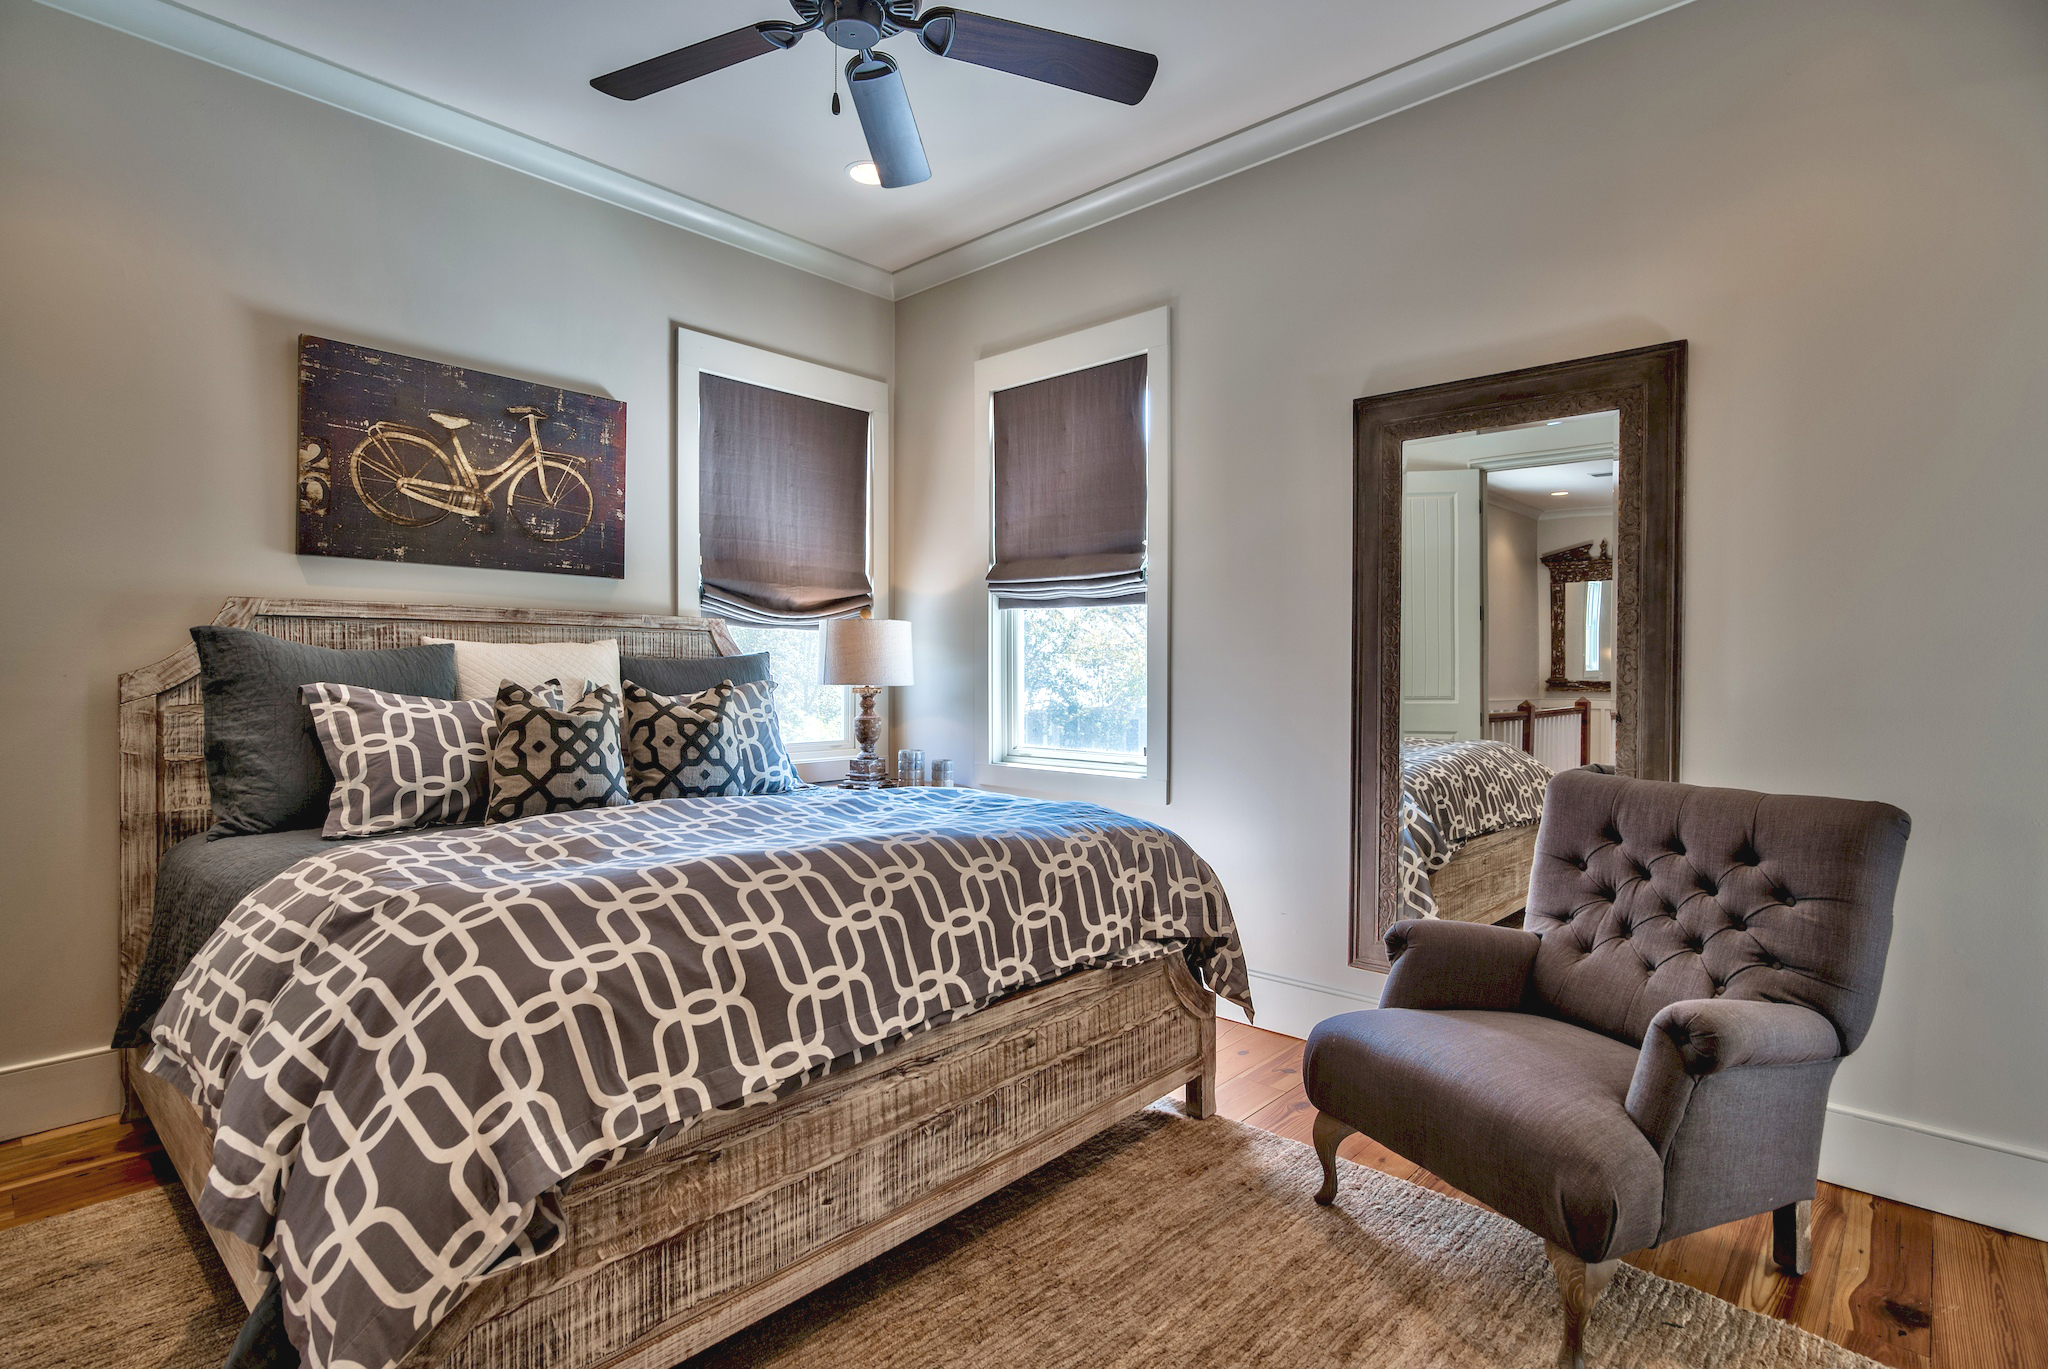 Guest bedroom with a King sized bed